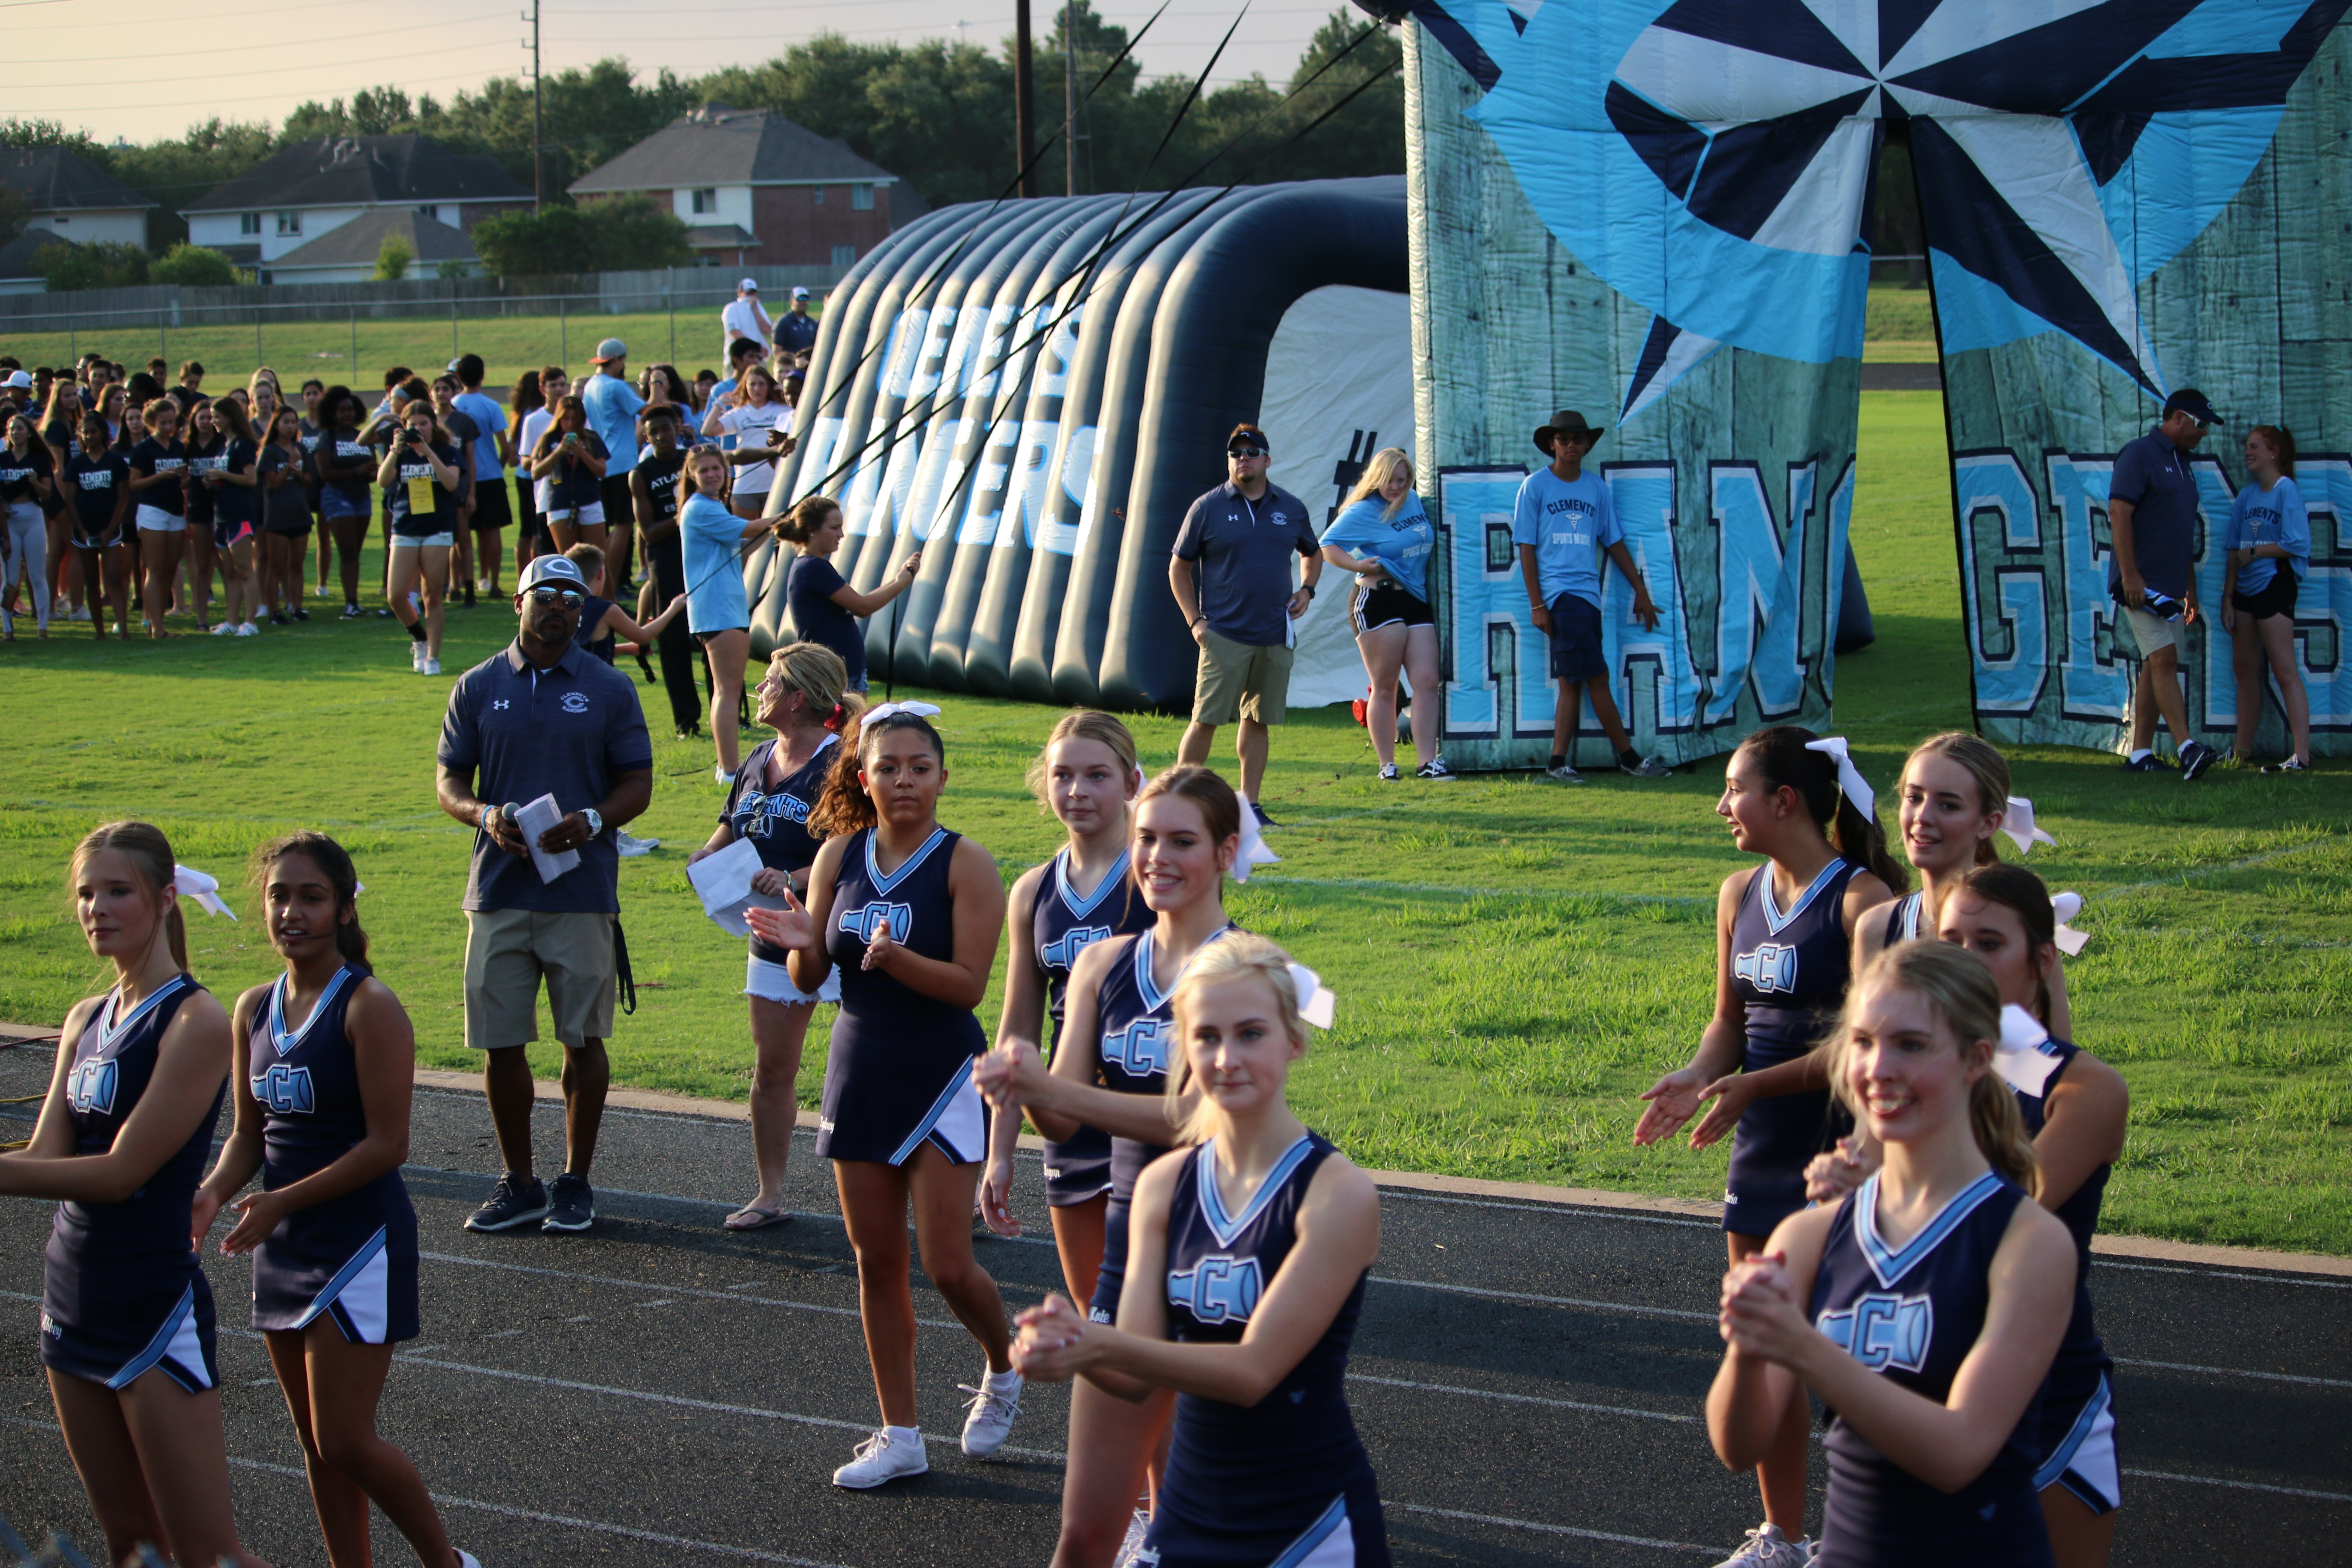 2019 CHS All-Sports Community Pep Rally | Saturday, August 24th